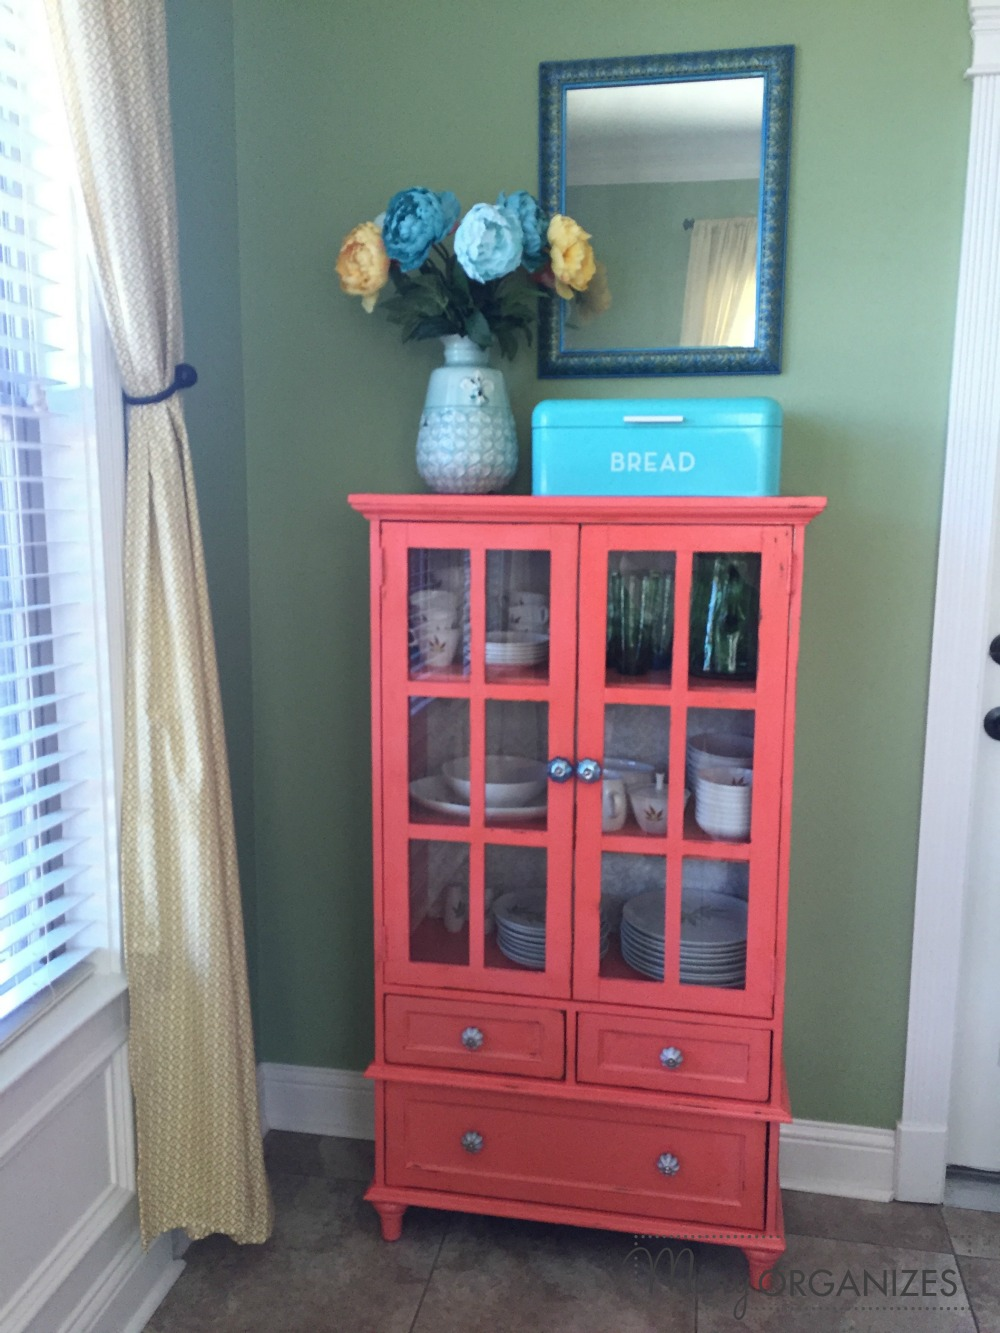 Mary Organizes - coral cabinet